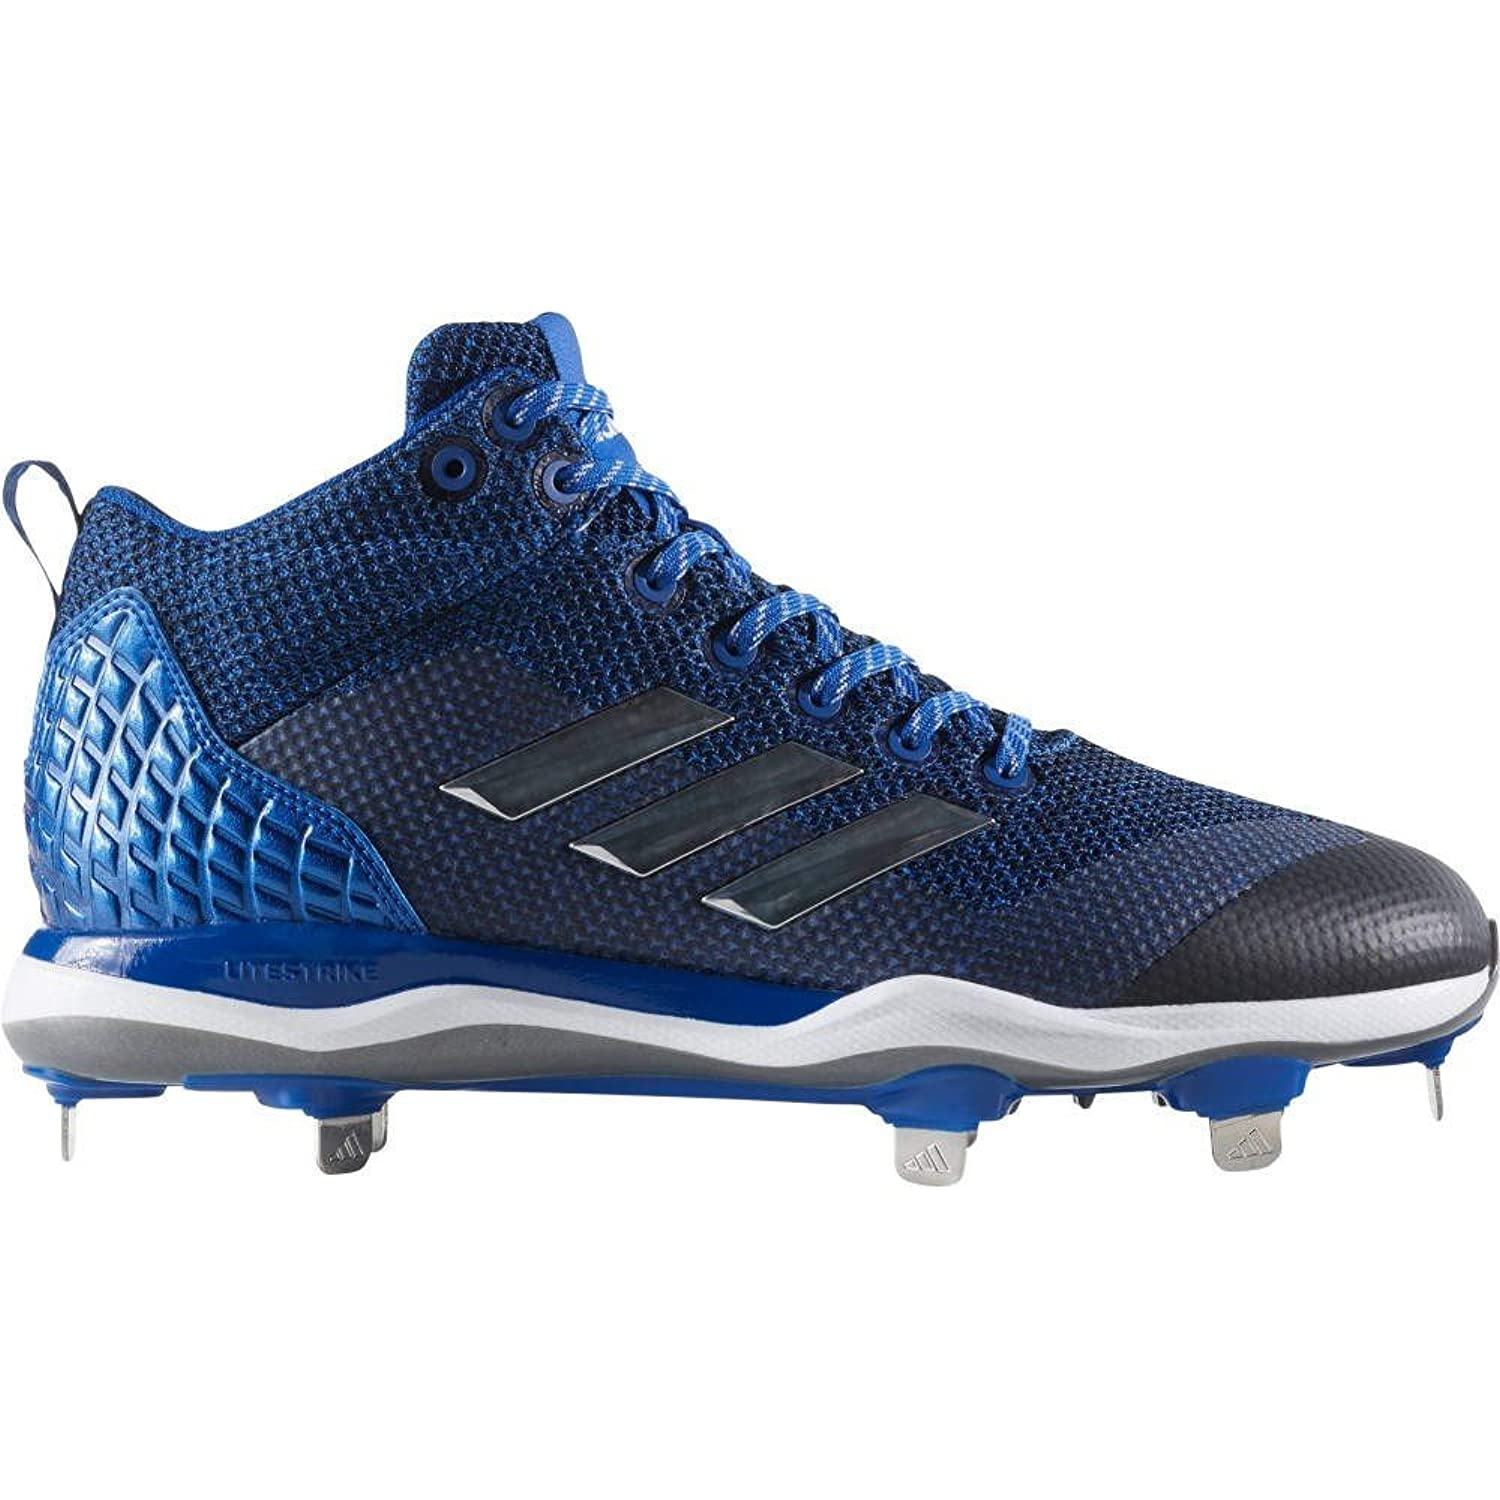 (アディダス) adidas メンズ 野球 シューズ靴 adidas Poweralley 5 Mid Metal Baseball Cleats [並行輸入品] B077XWWZQF 15.0-Medium